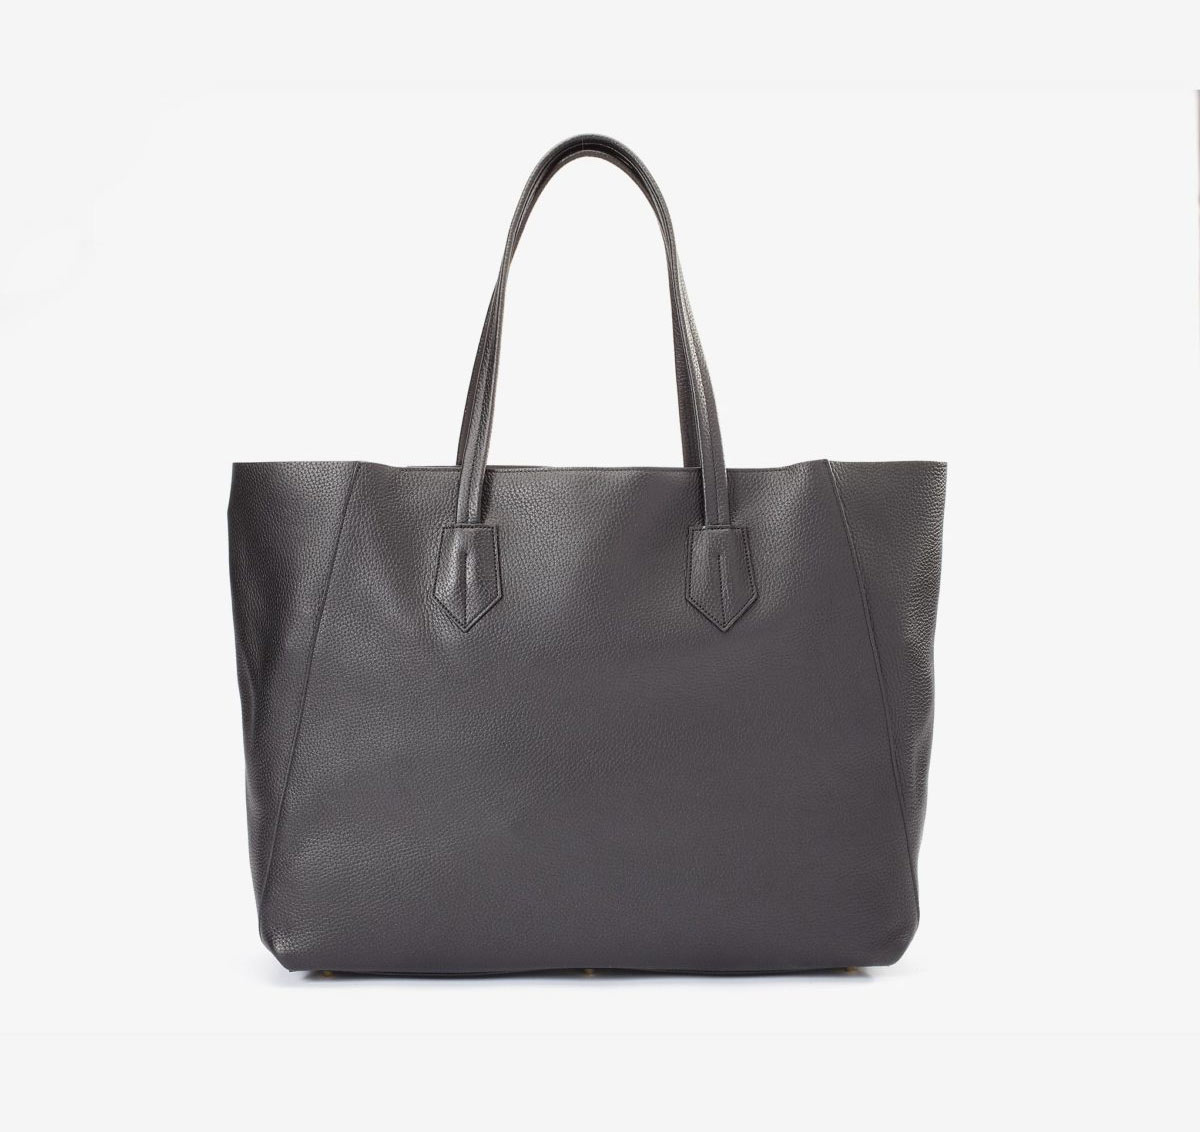 neely and choe large tote black front view